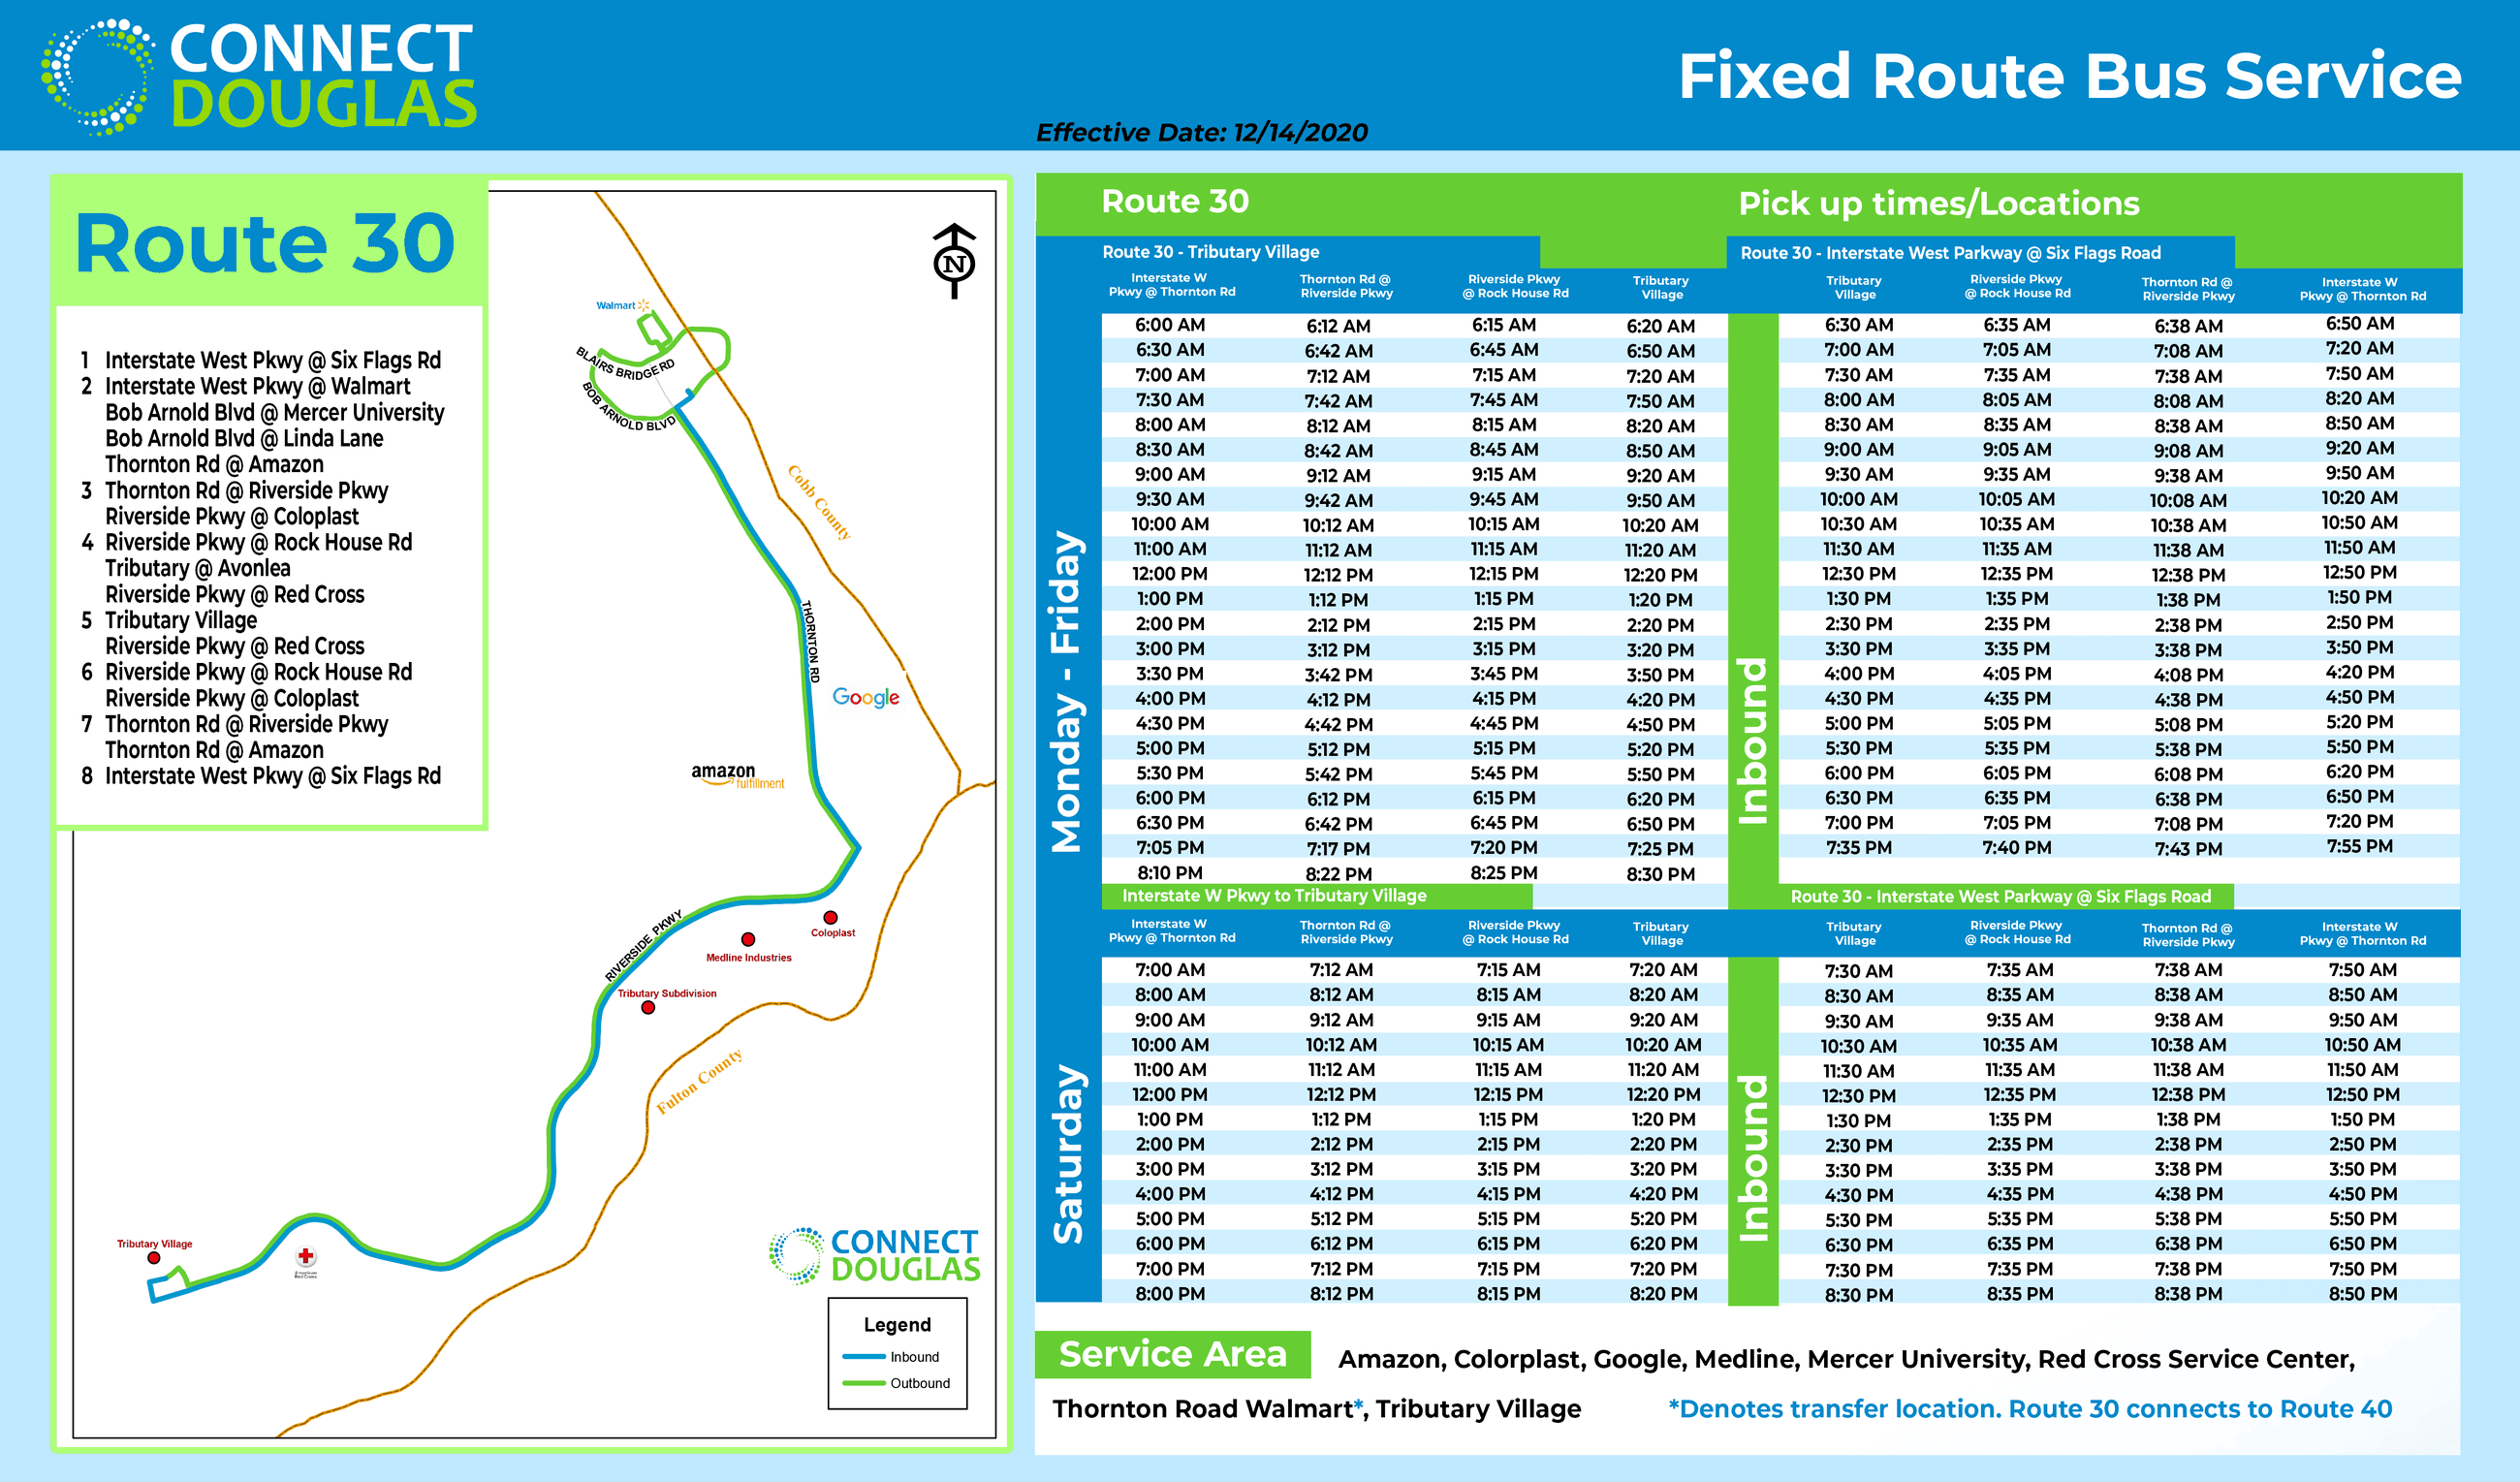 Connect Douglas-Bus Route 30 (Effective 12/14/2020)